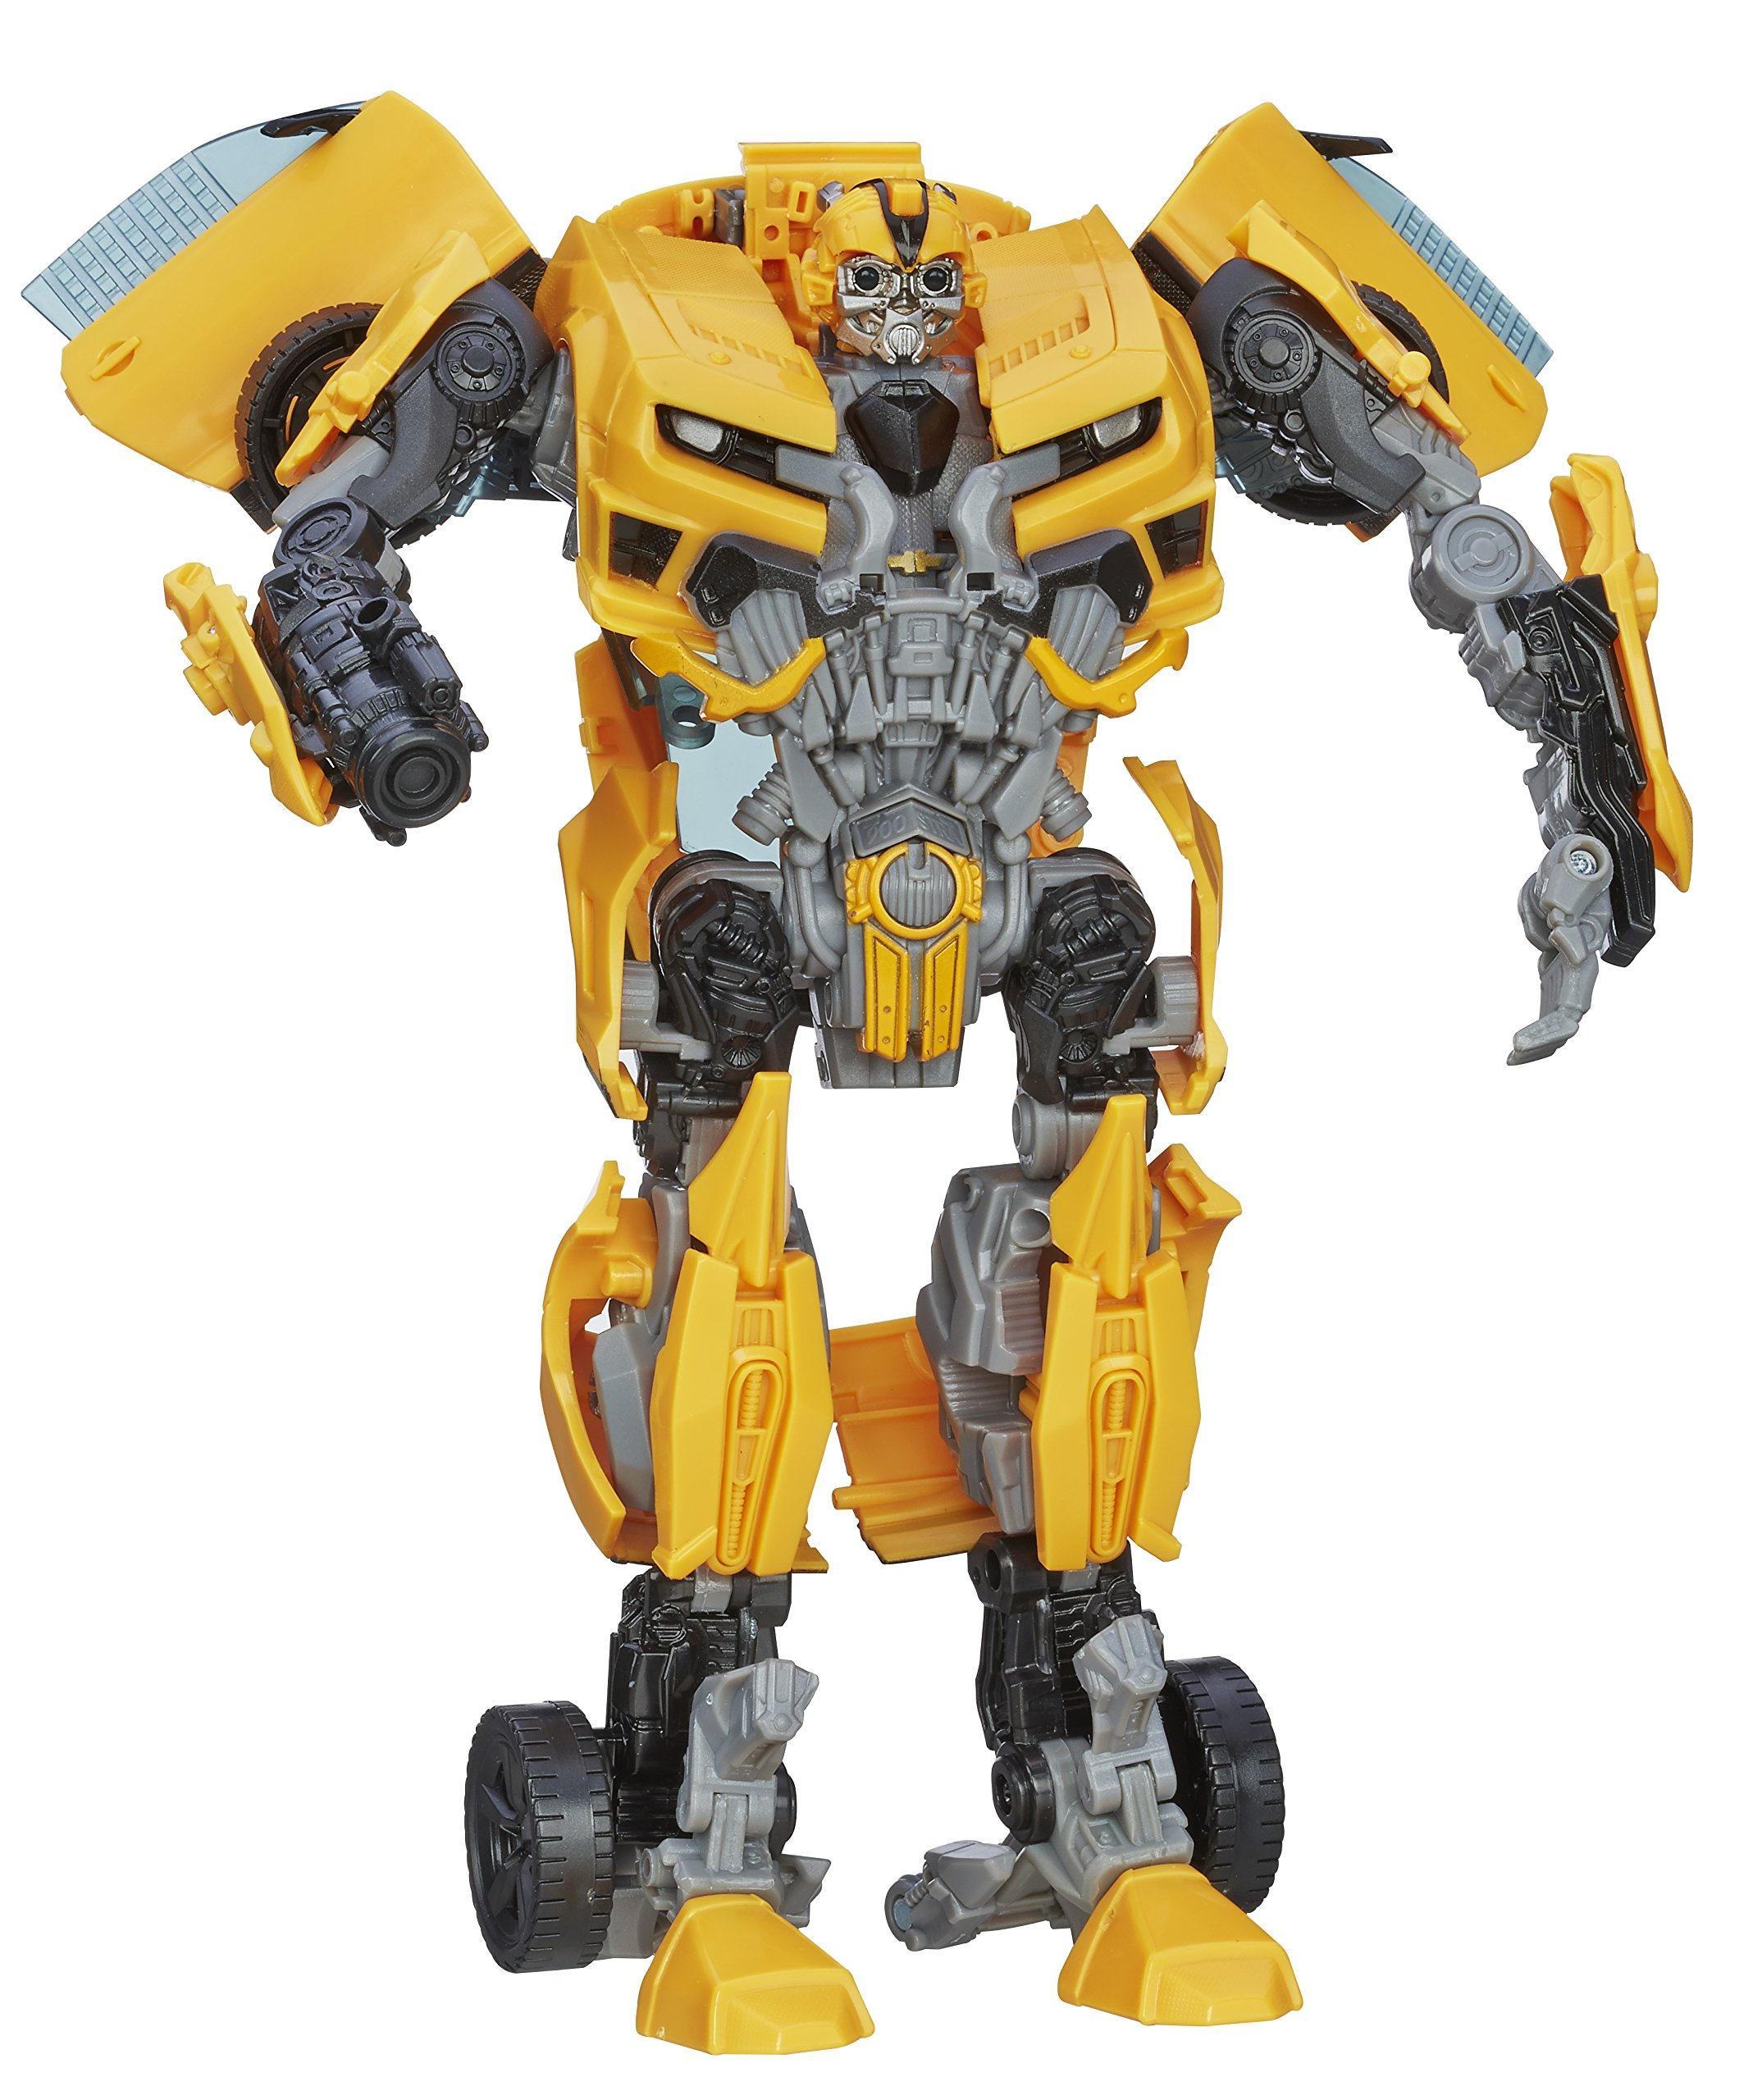 Hasbro Transformers: Age of Extinction Leader Class Bumblebee (Costco Exclusive)